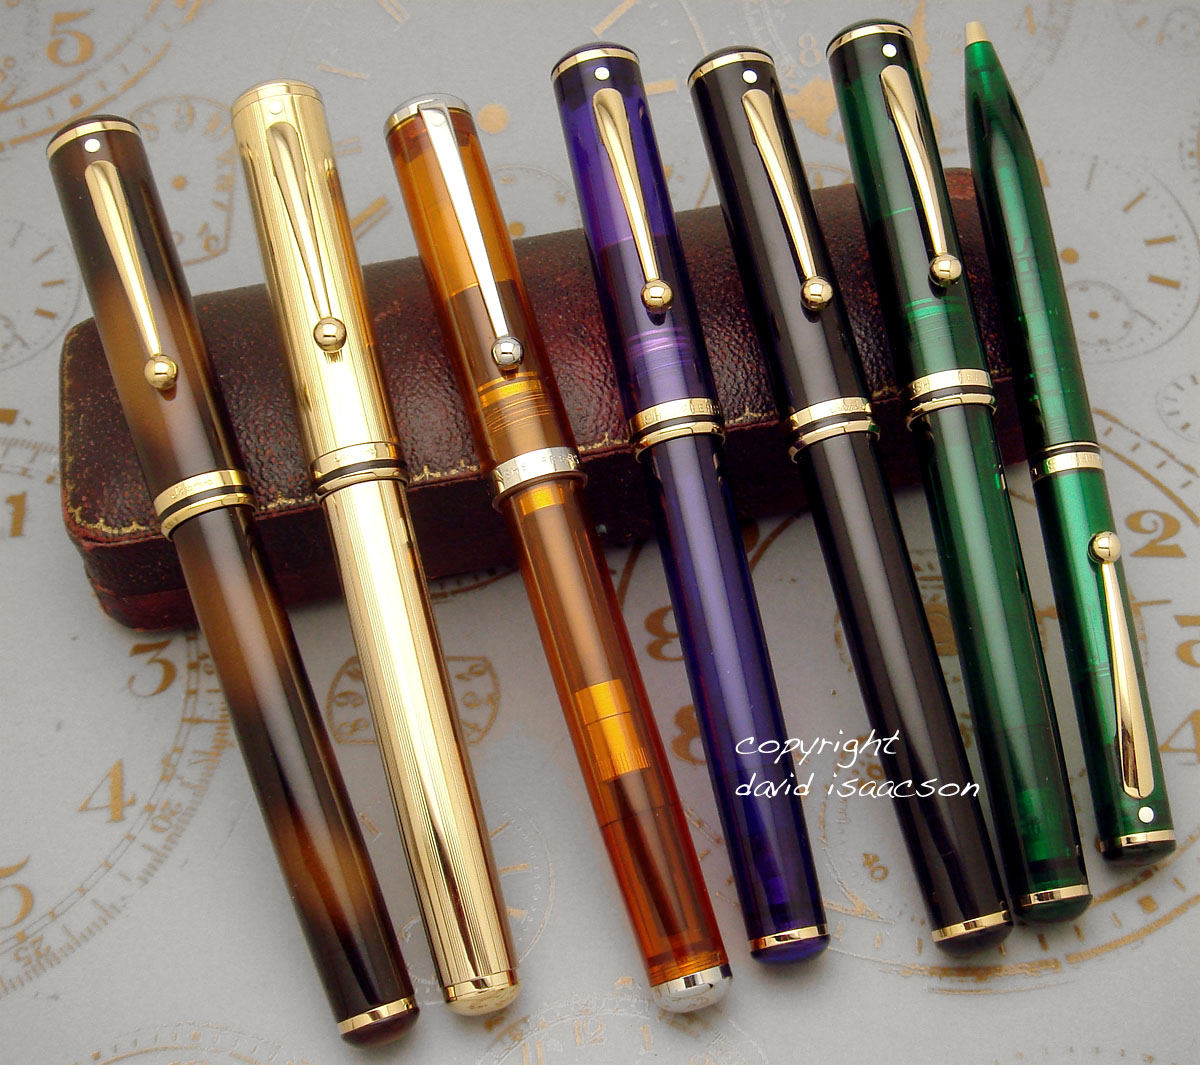 Forsalesheafferlatehtm Pen Each Includes 1 Ball Point And Fountain As The Diagram Click For Larger Pic